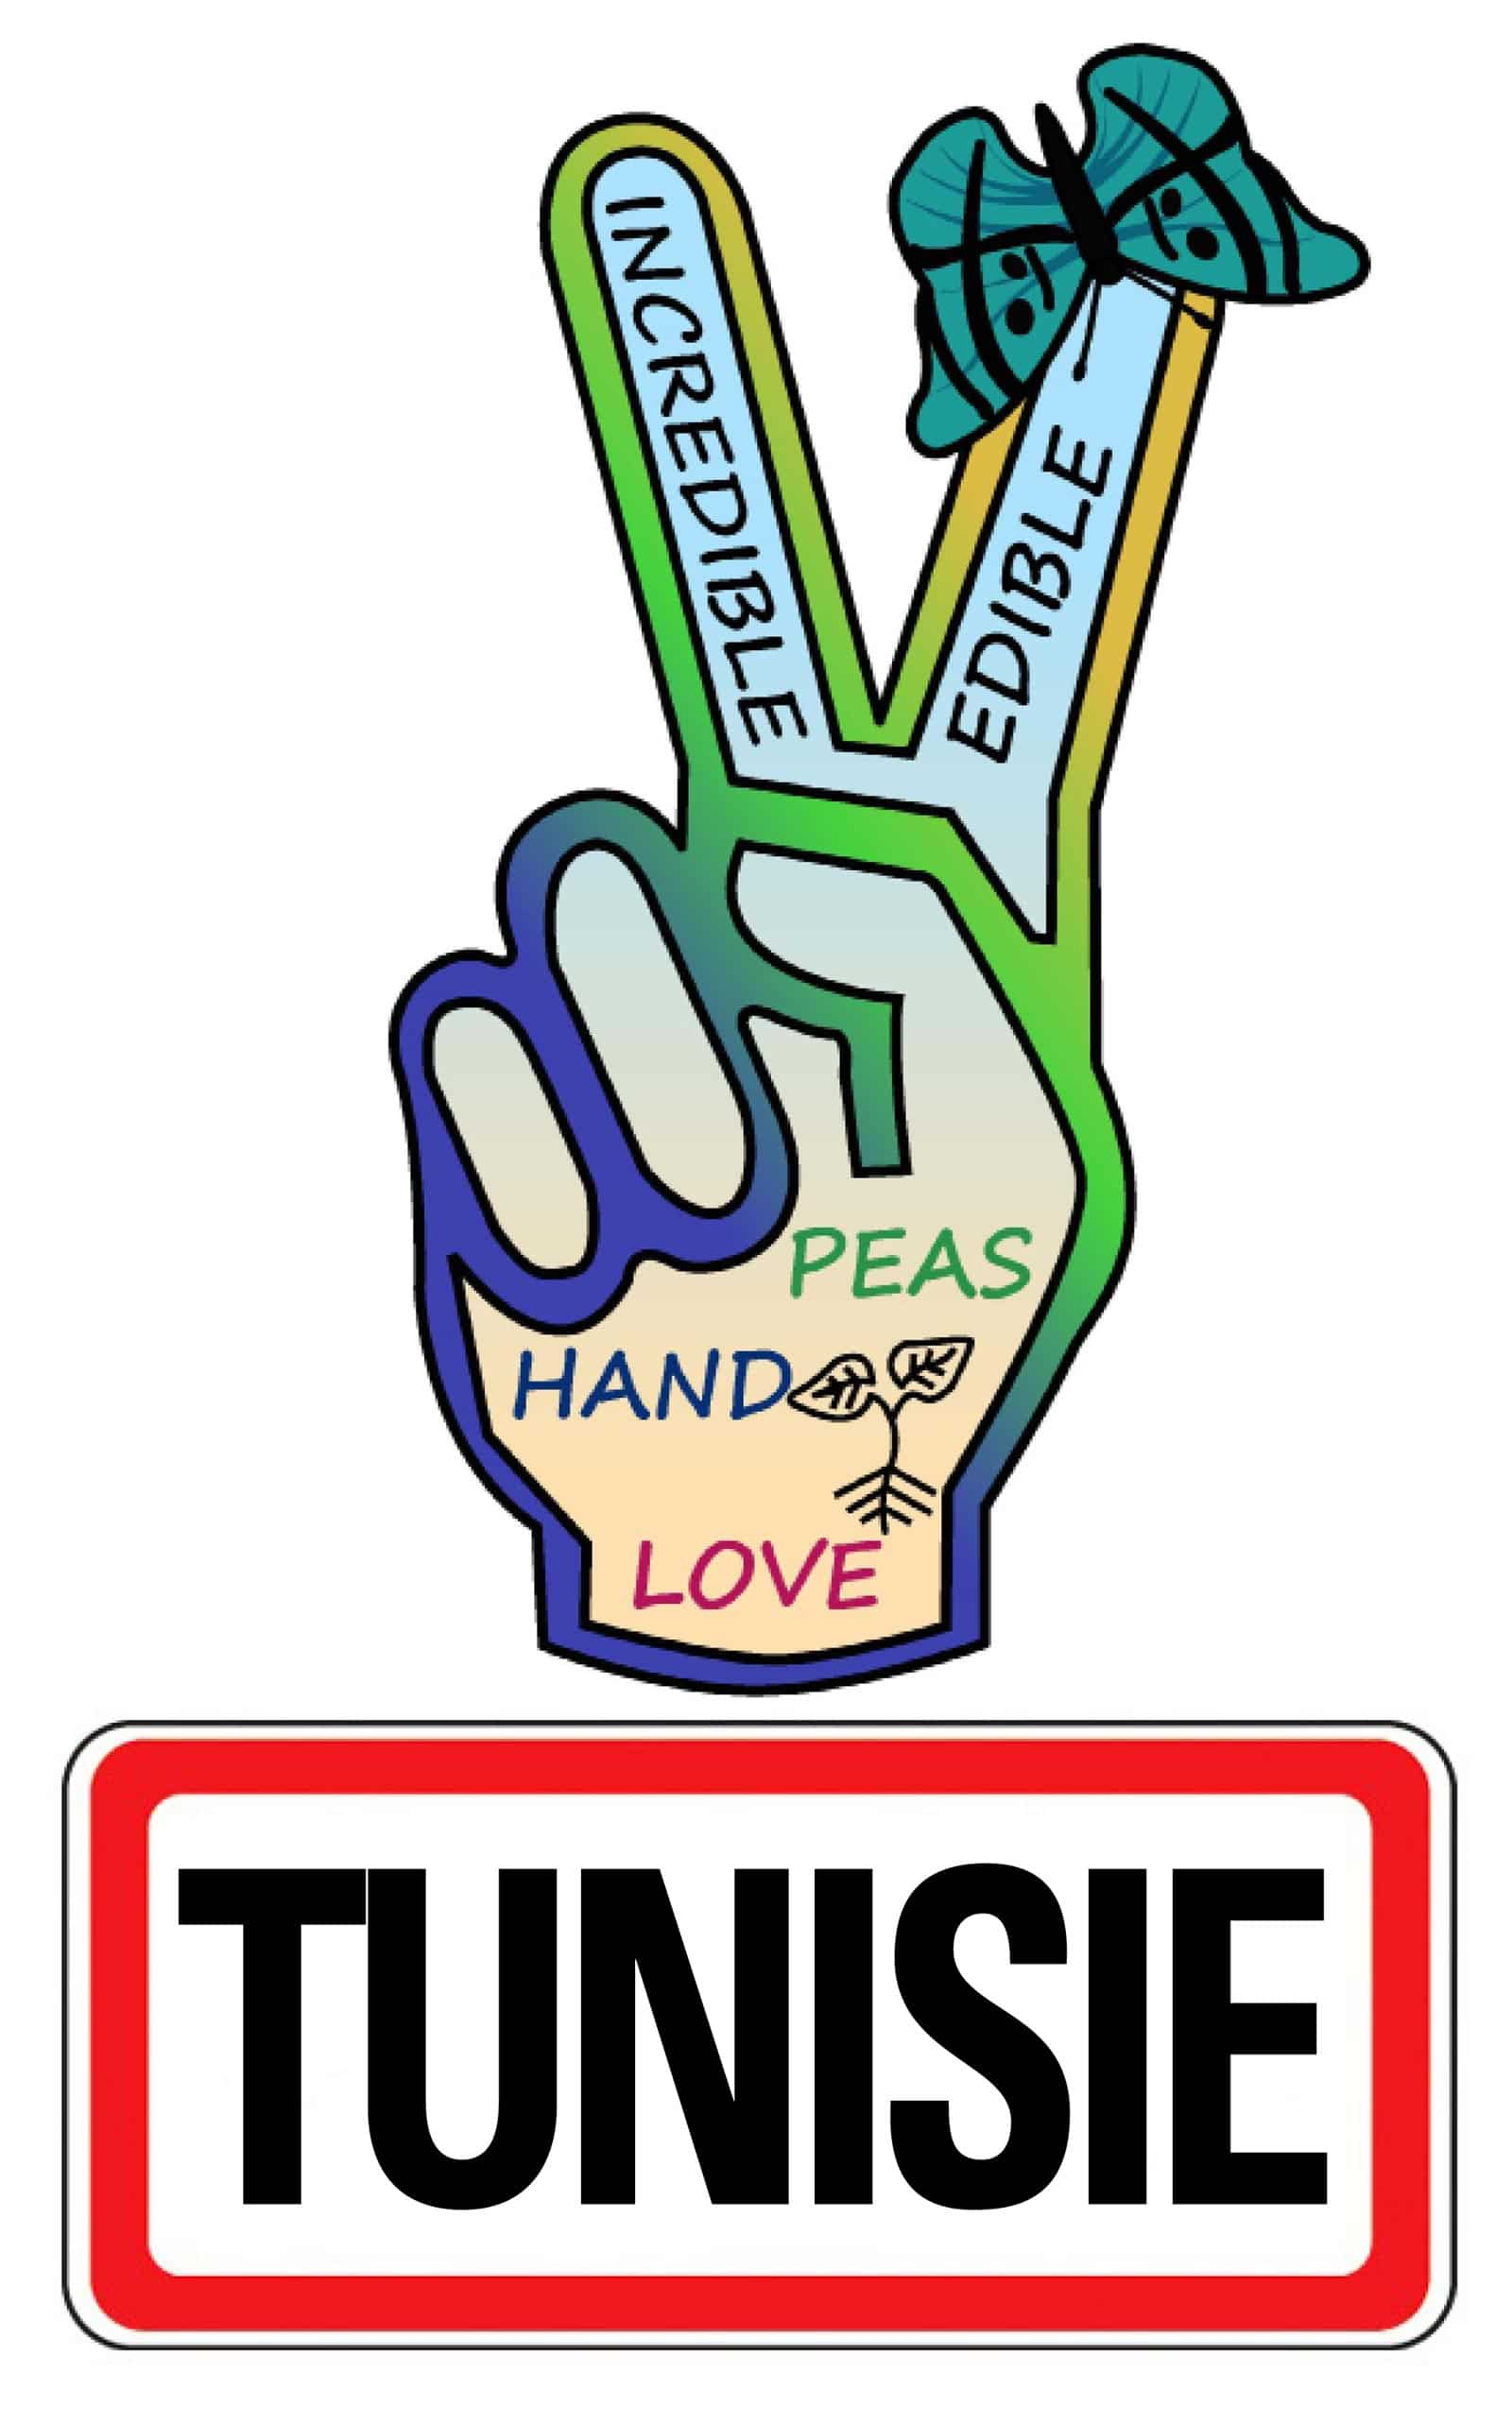 peas_and_love_tunisie_V2_w1600